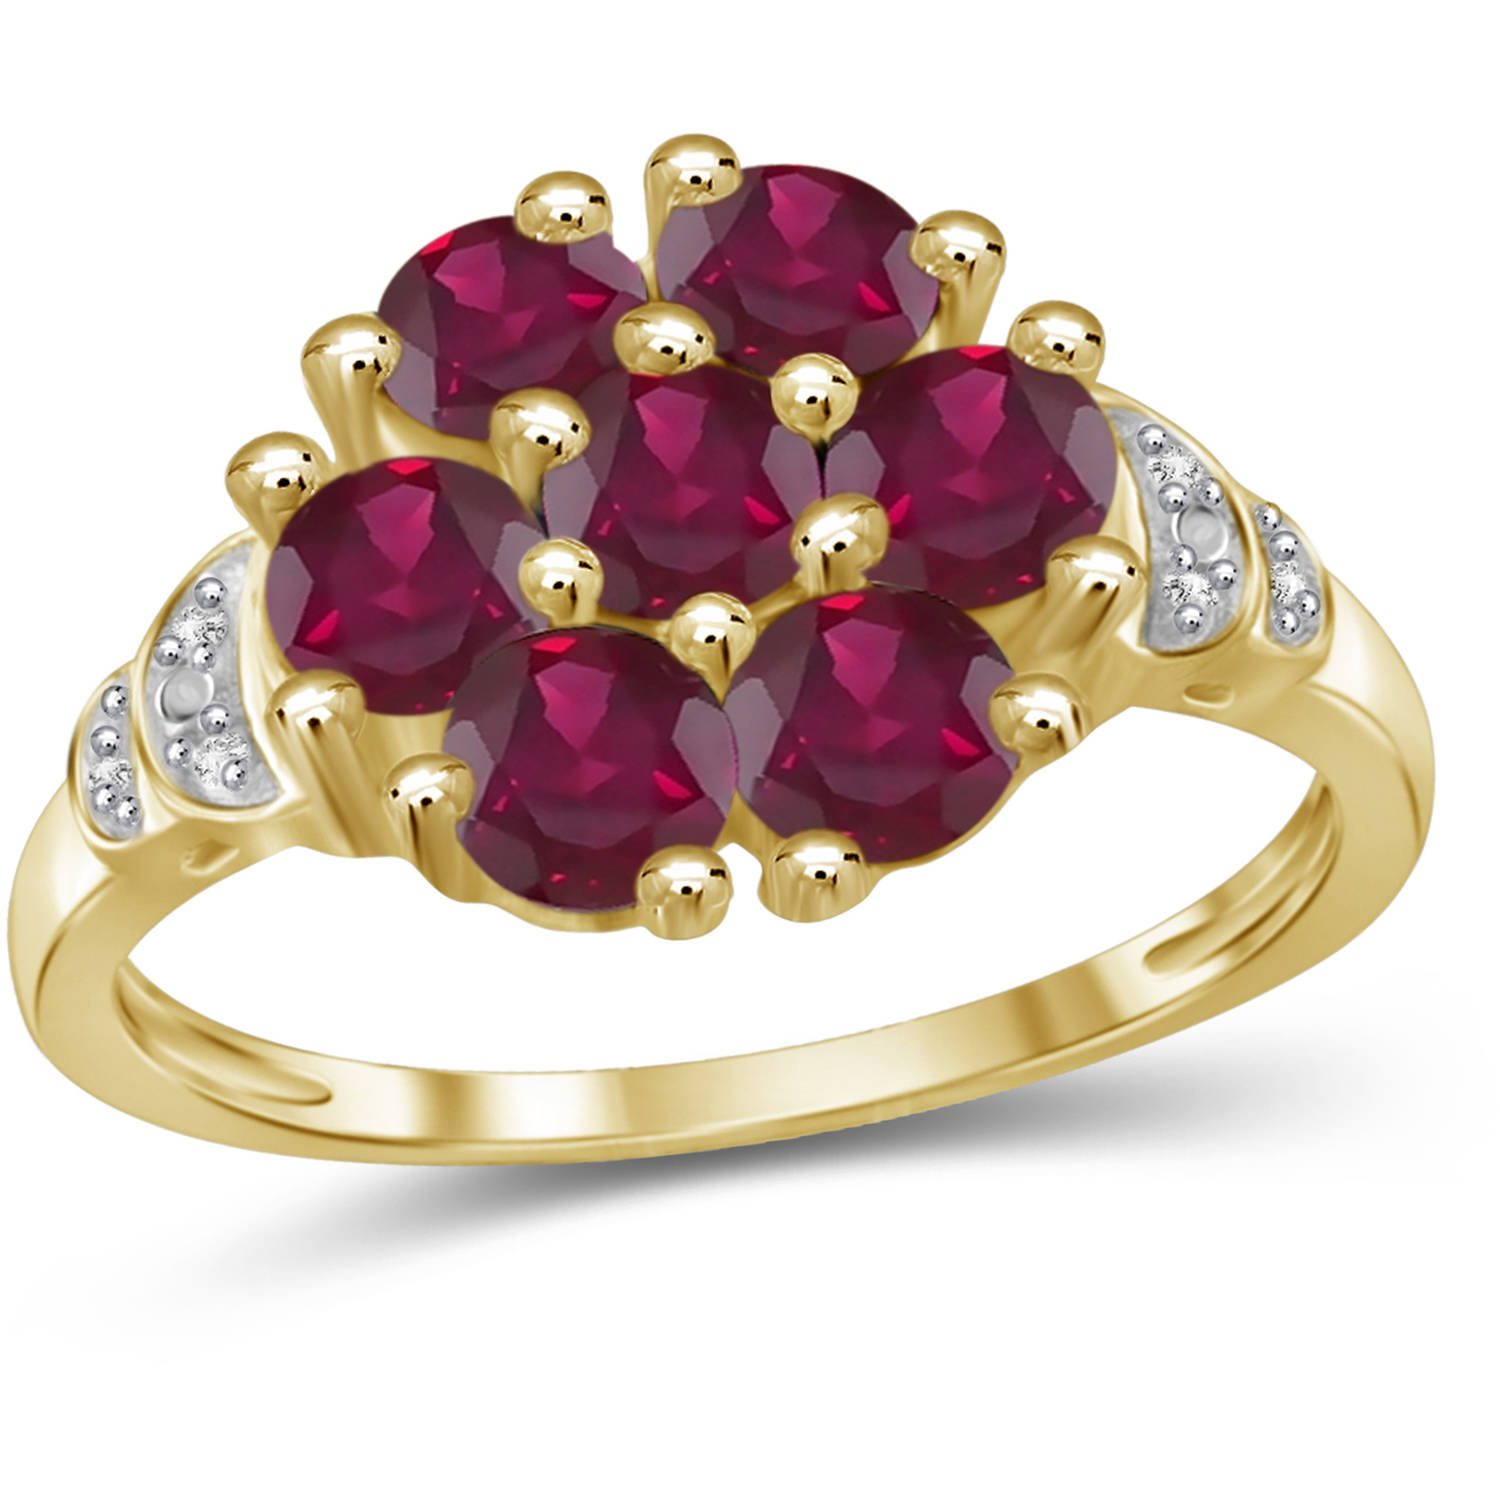 JewelersClub 2.31 Carat T.G.W. Ruby Gemstone And White Diamond Accent Gold Over Silver Ring by JewelersClub